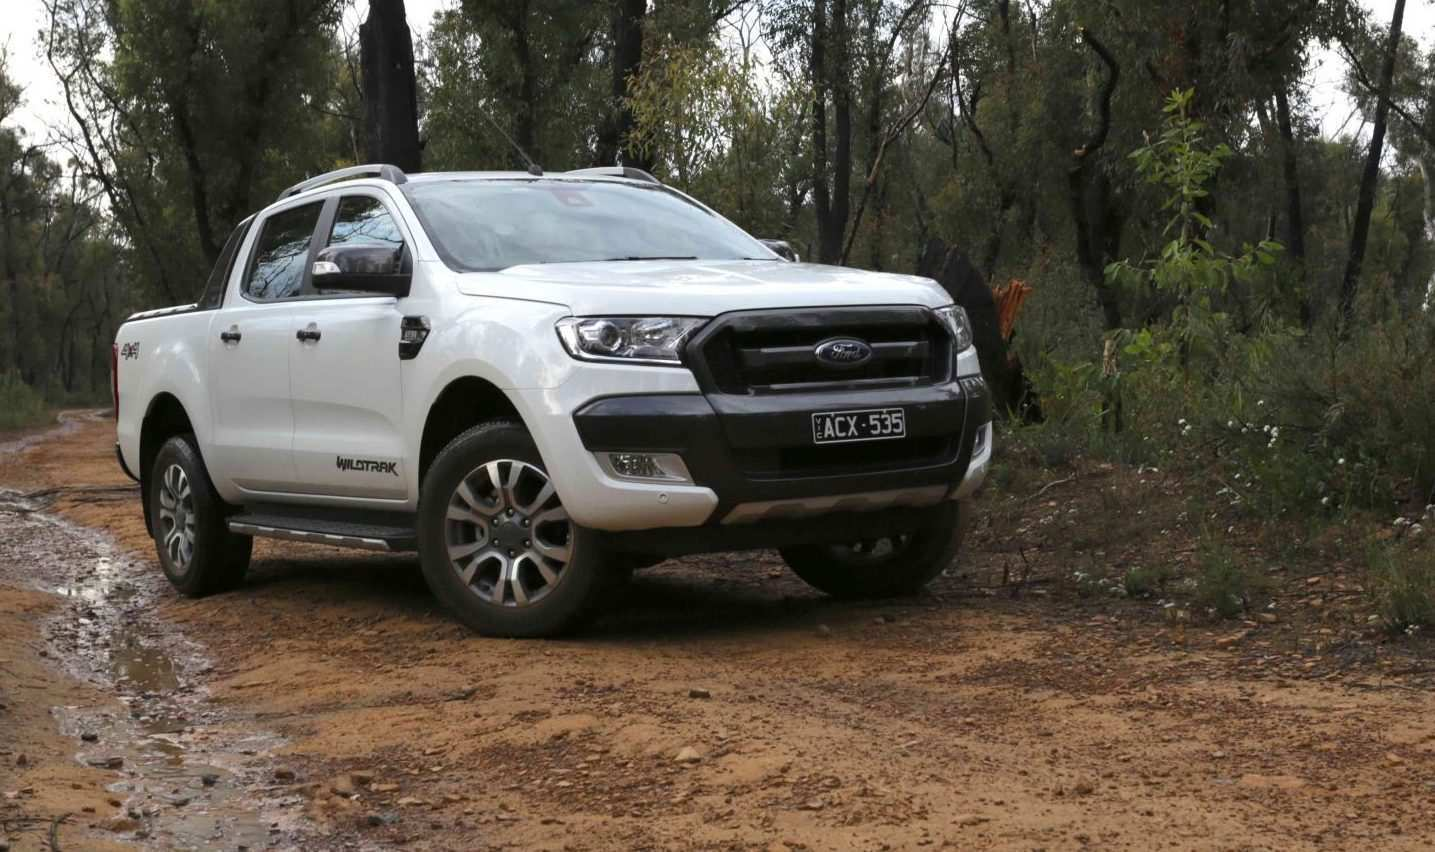 46 All New Ford Ranger 2020 Australia Price And Release Date